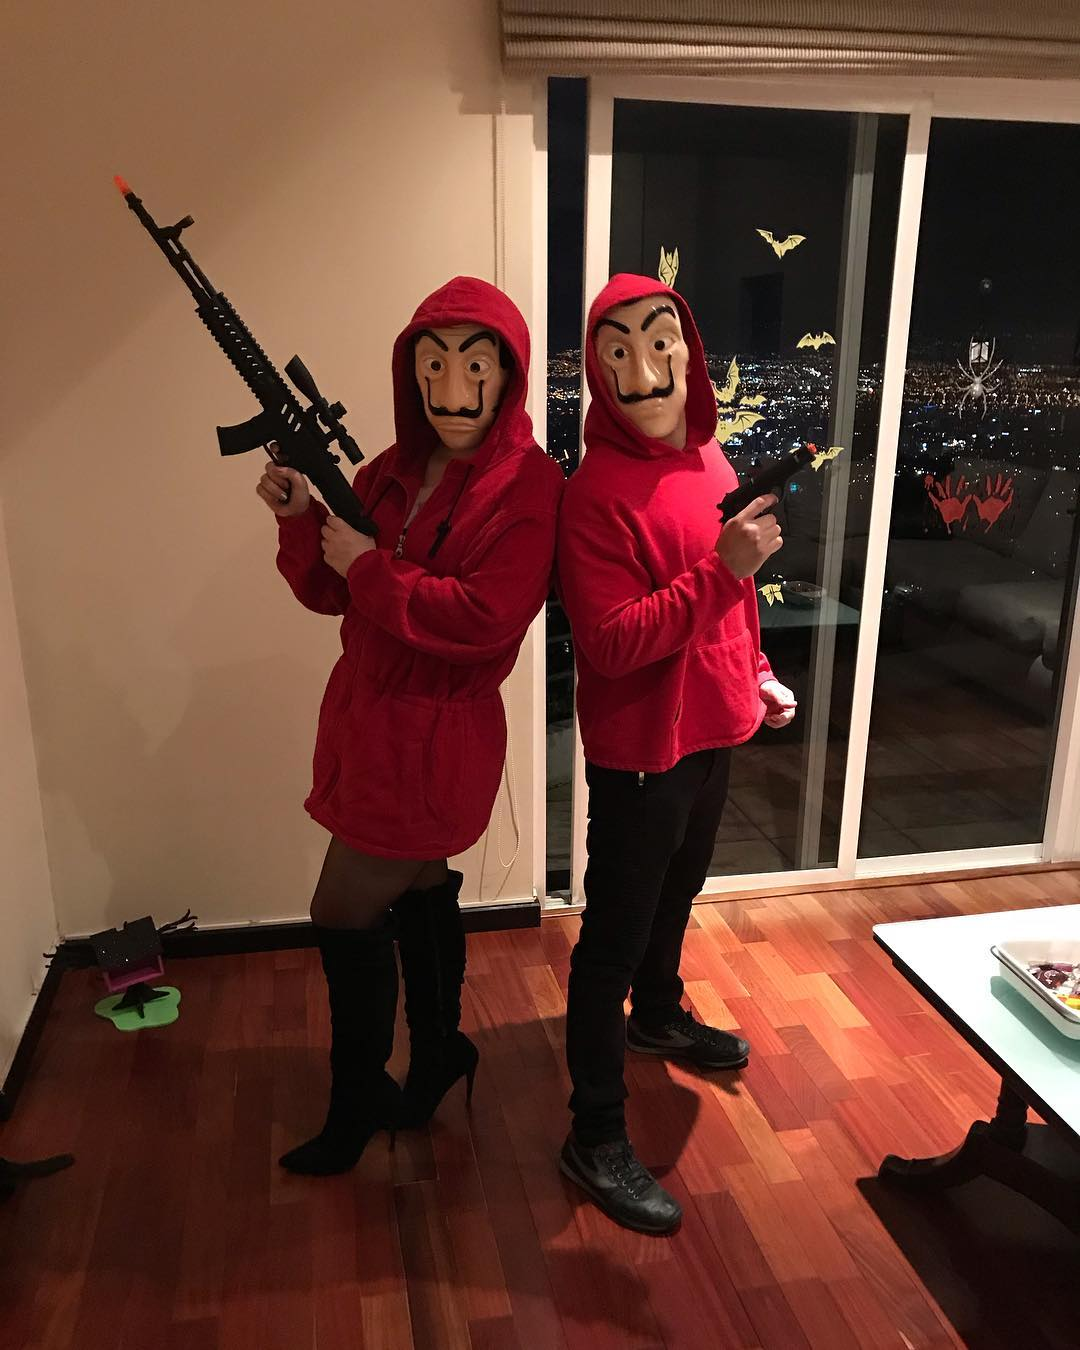 50 Easy Halloween Costume Ideas for Couples Funny couple